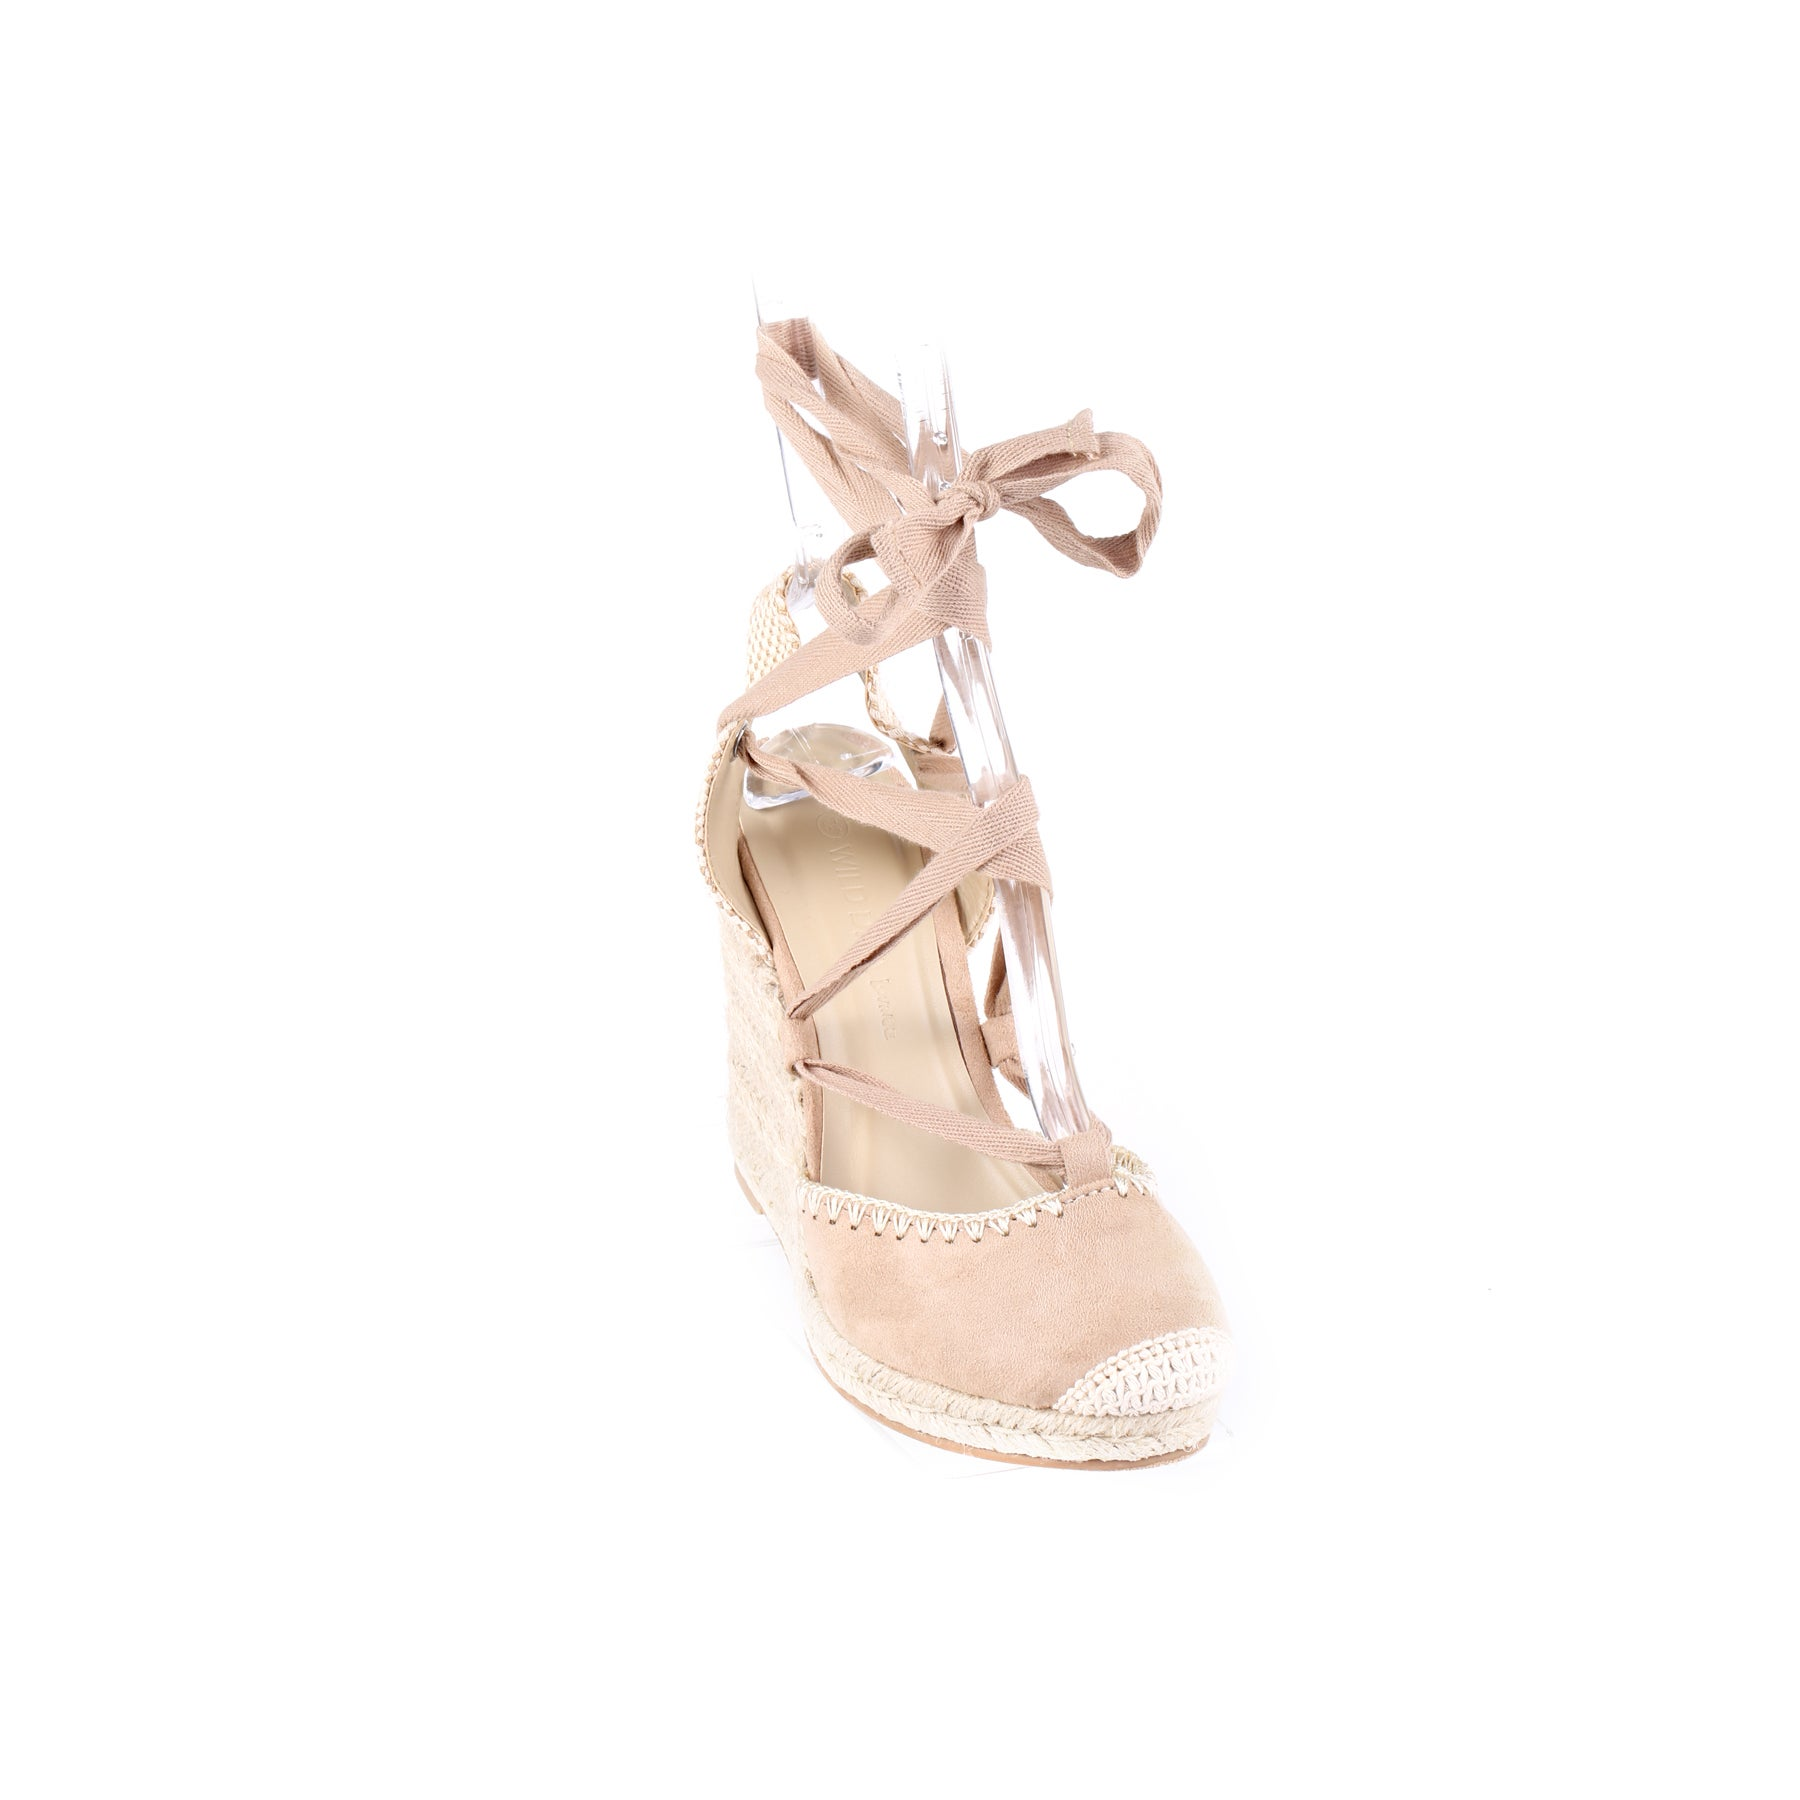 c3b90be05 Shop Xehar Women s Casual Strappy Heeled Wedge Sandal - Free ...